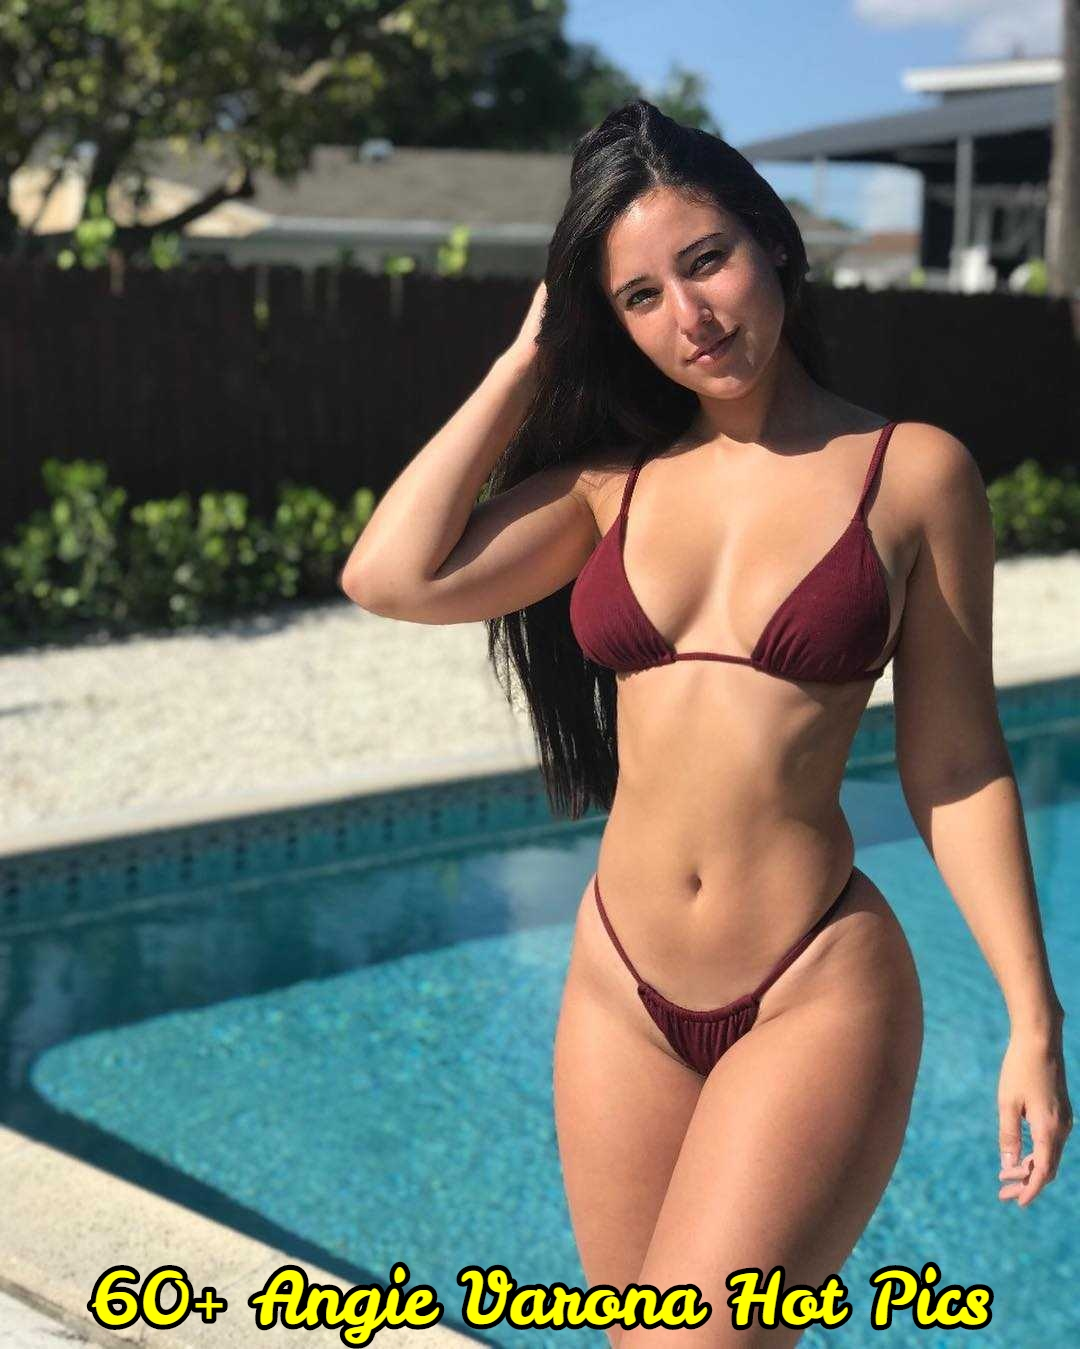 Angie Varona Fotos 61 angie varona sexy pictures are genuinely spellbinding and